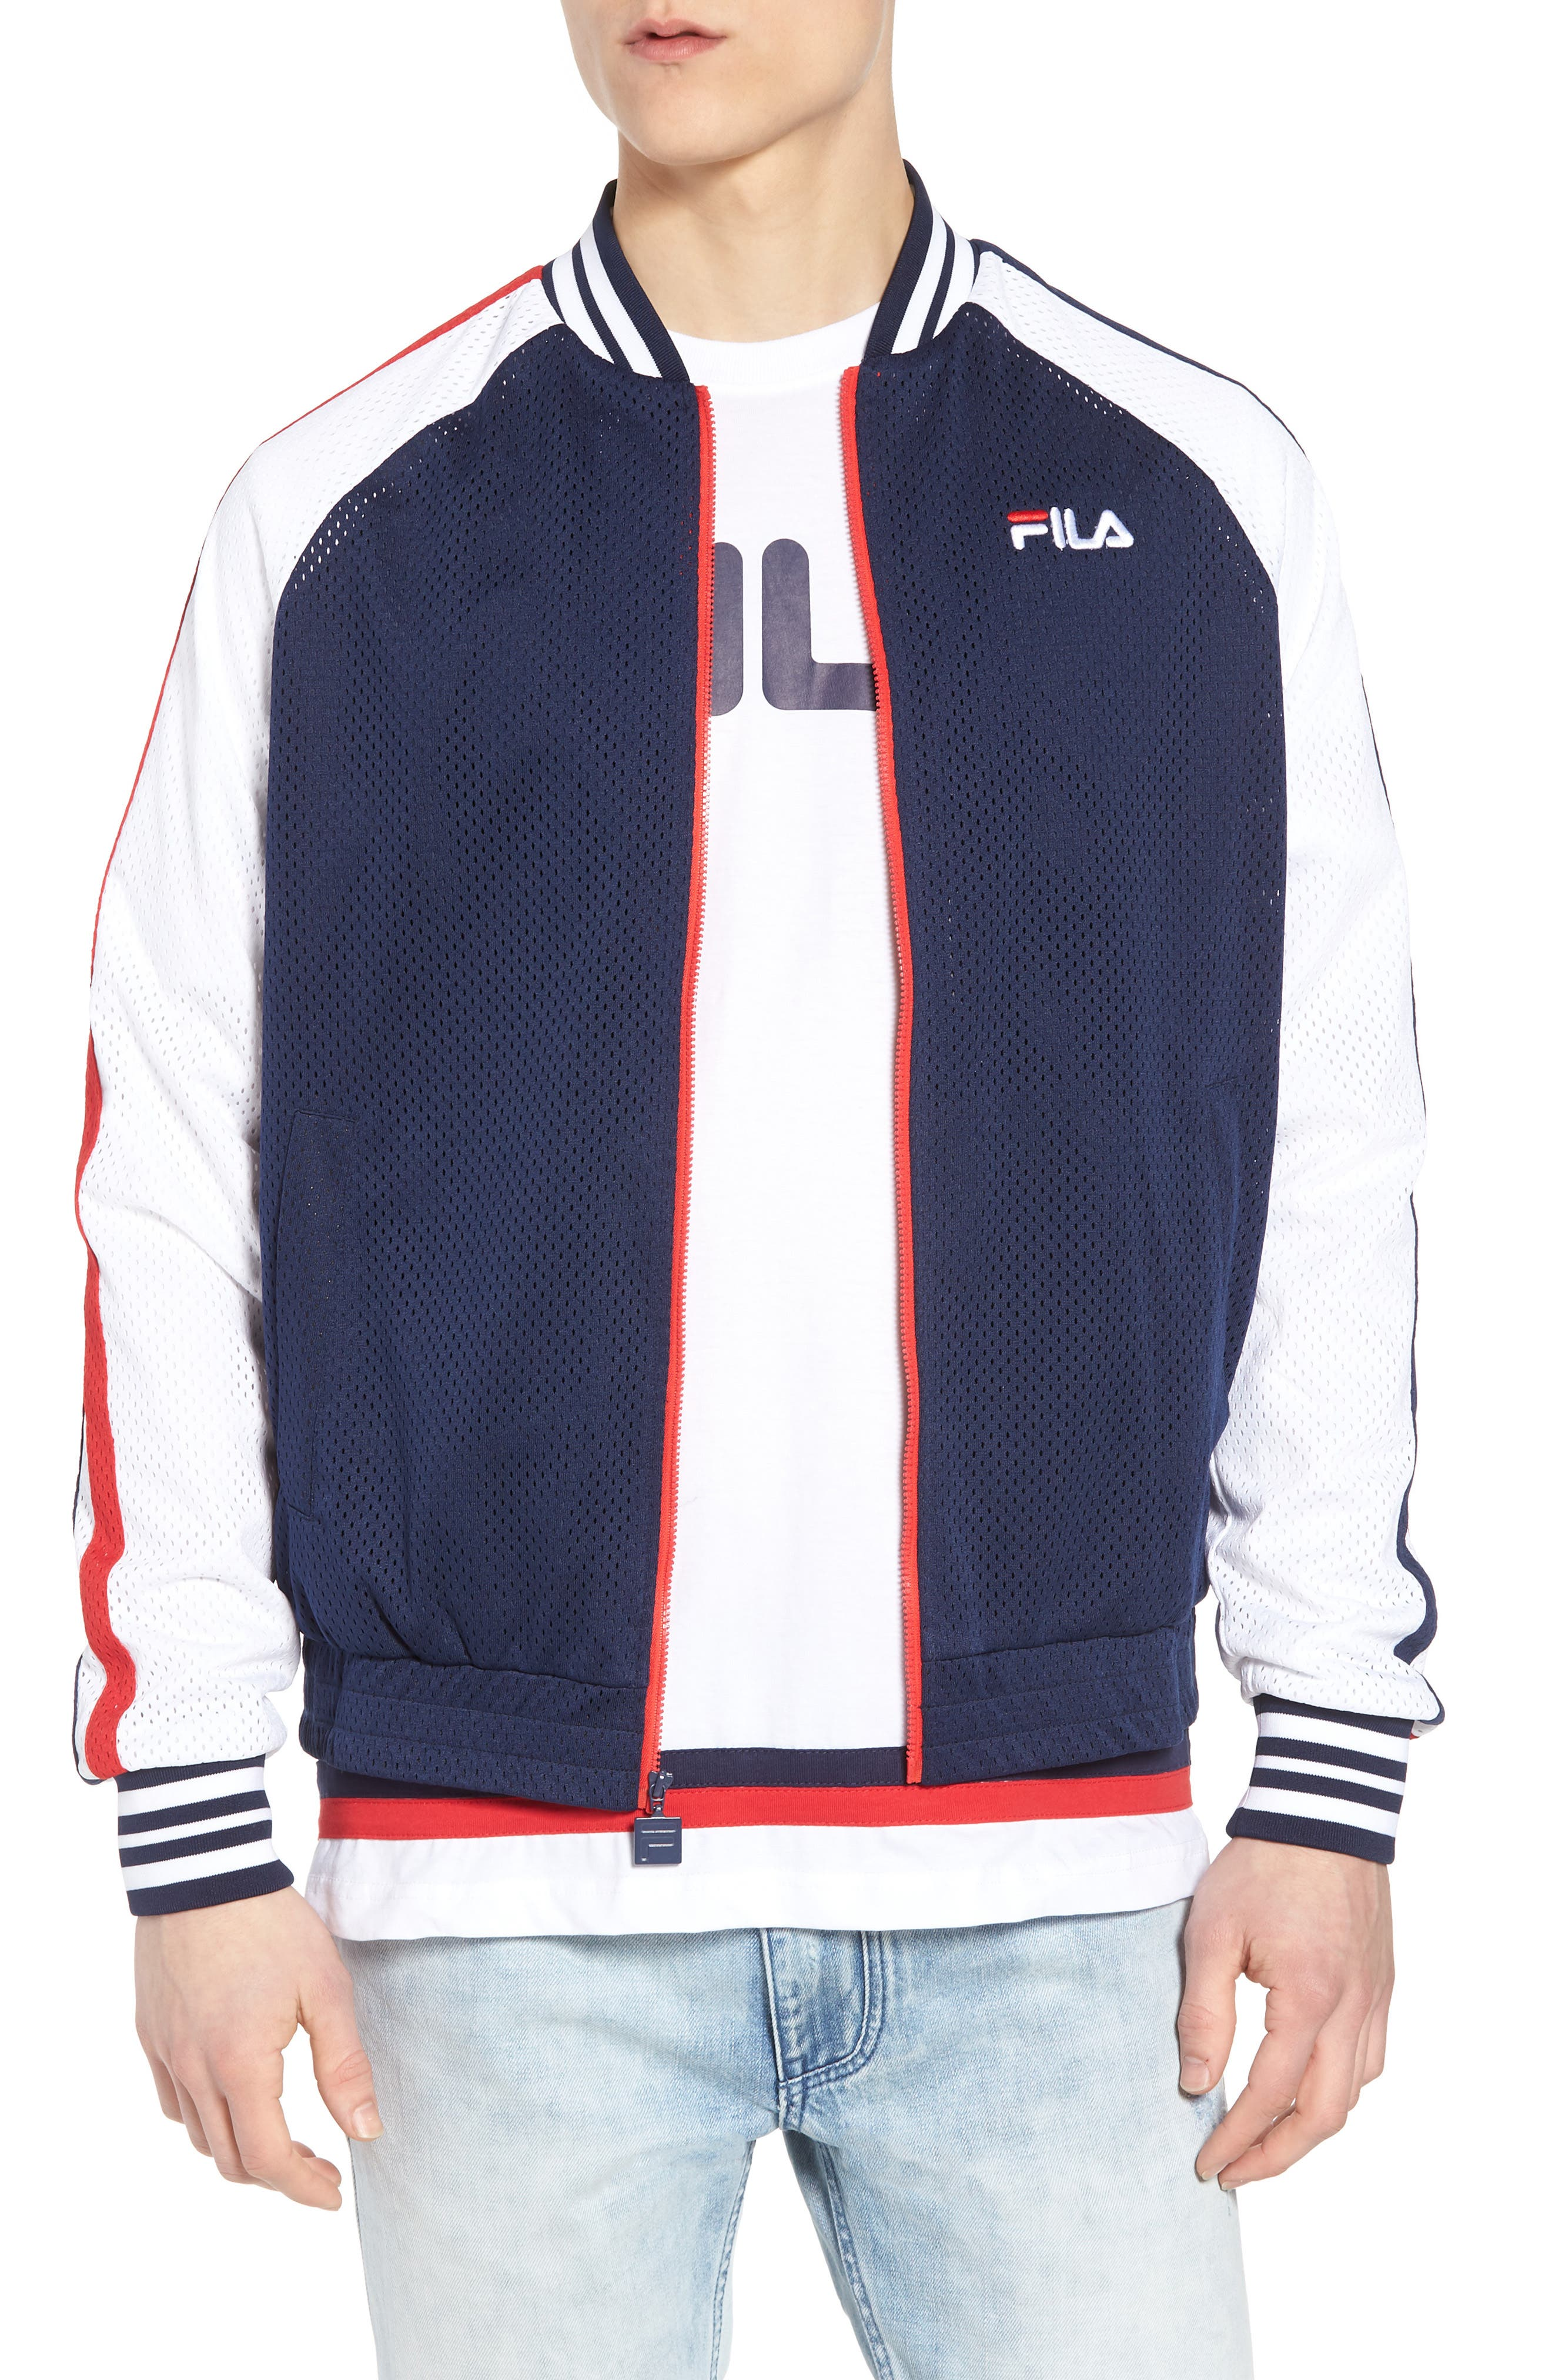 Lucas Jacket,                         Main,                         color, Peacoat/ White/ Chinese Red